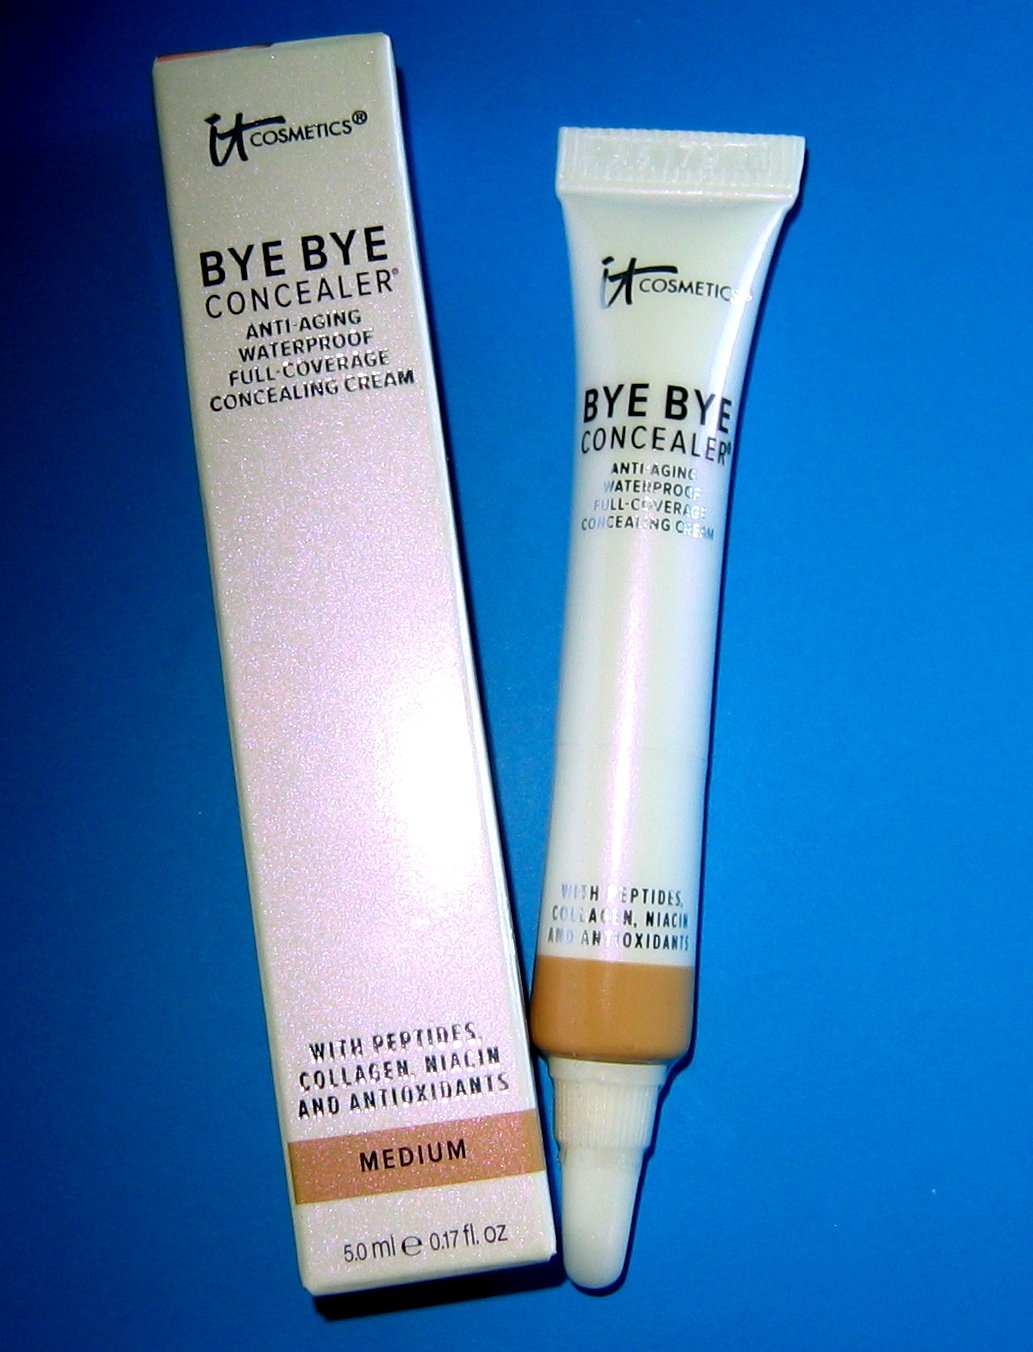 It Cosmetics MEDIUM Bye Bye Anti-Aging Waterproof Full-Coverage Concealer - 5 mL / 0.17 fl oz - NIB